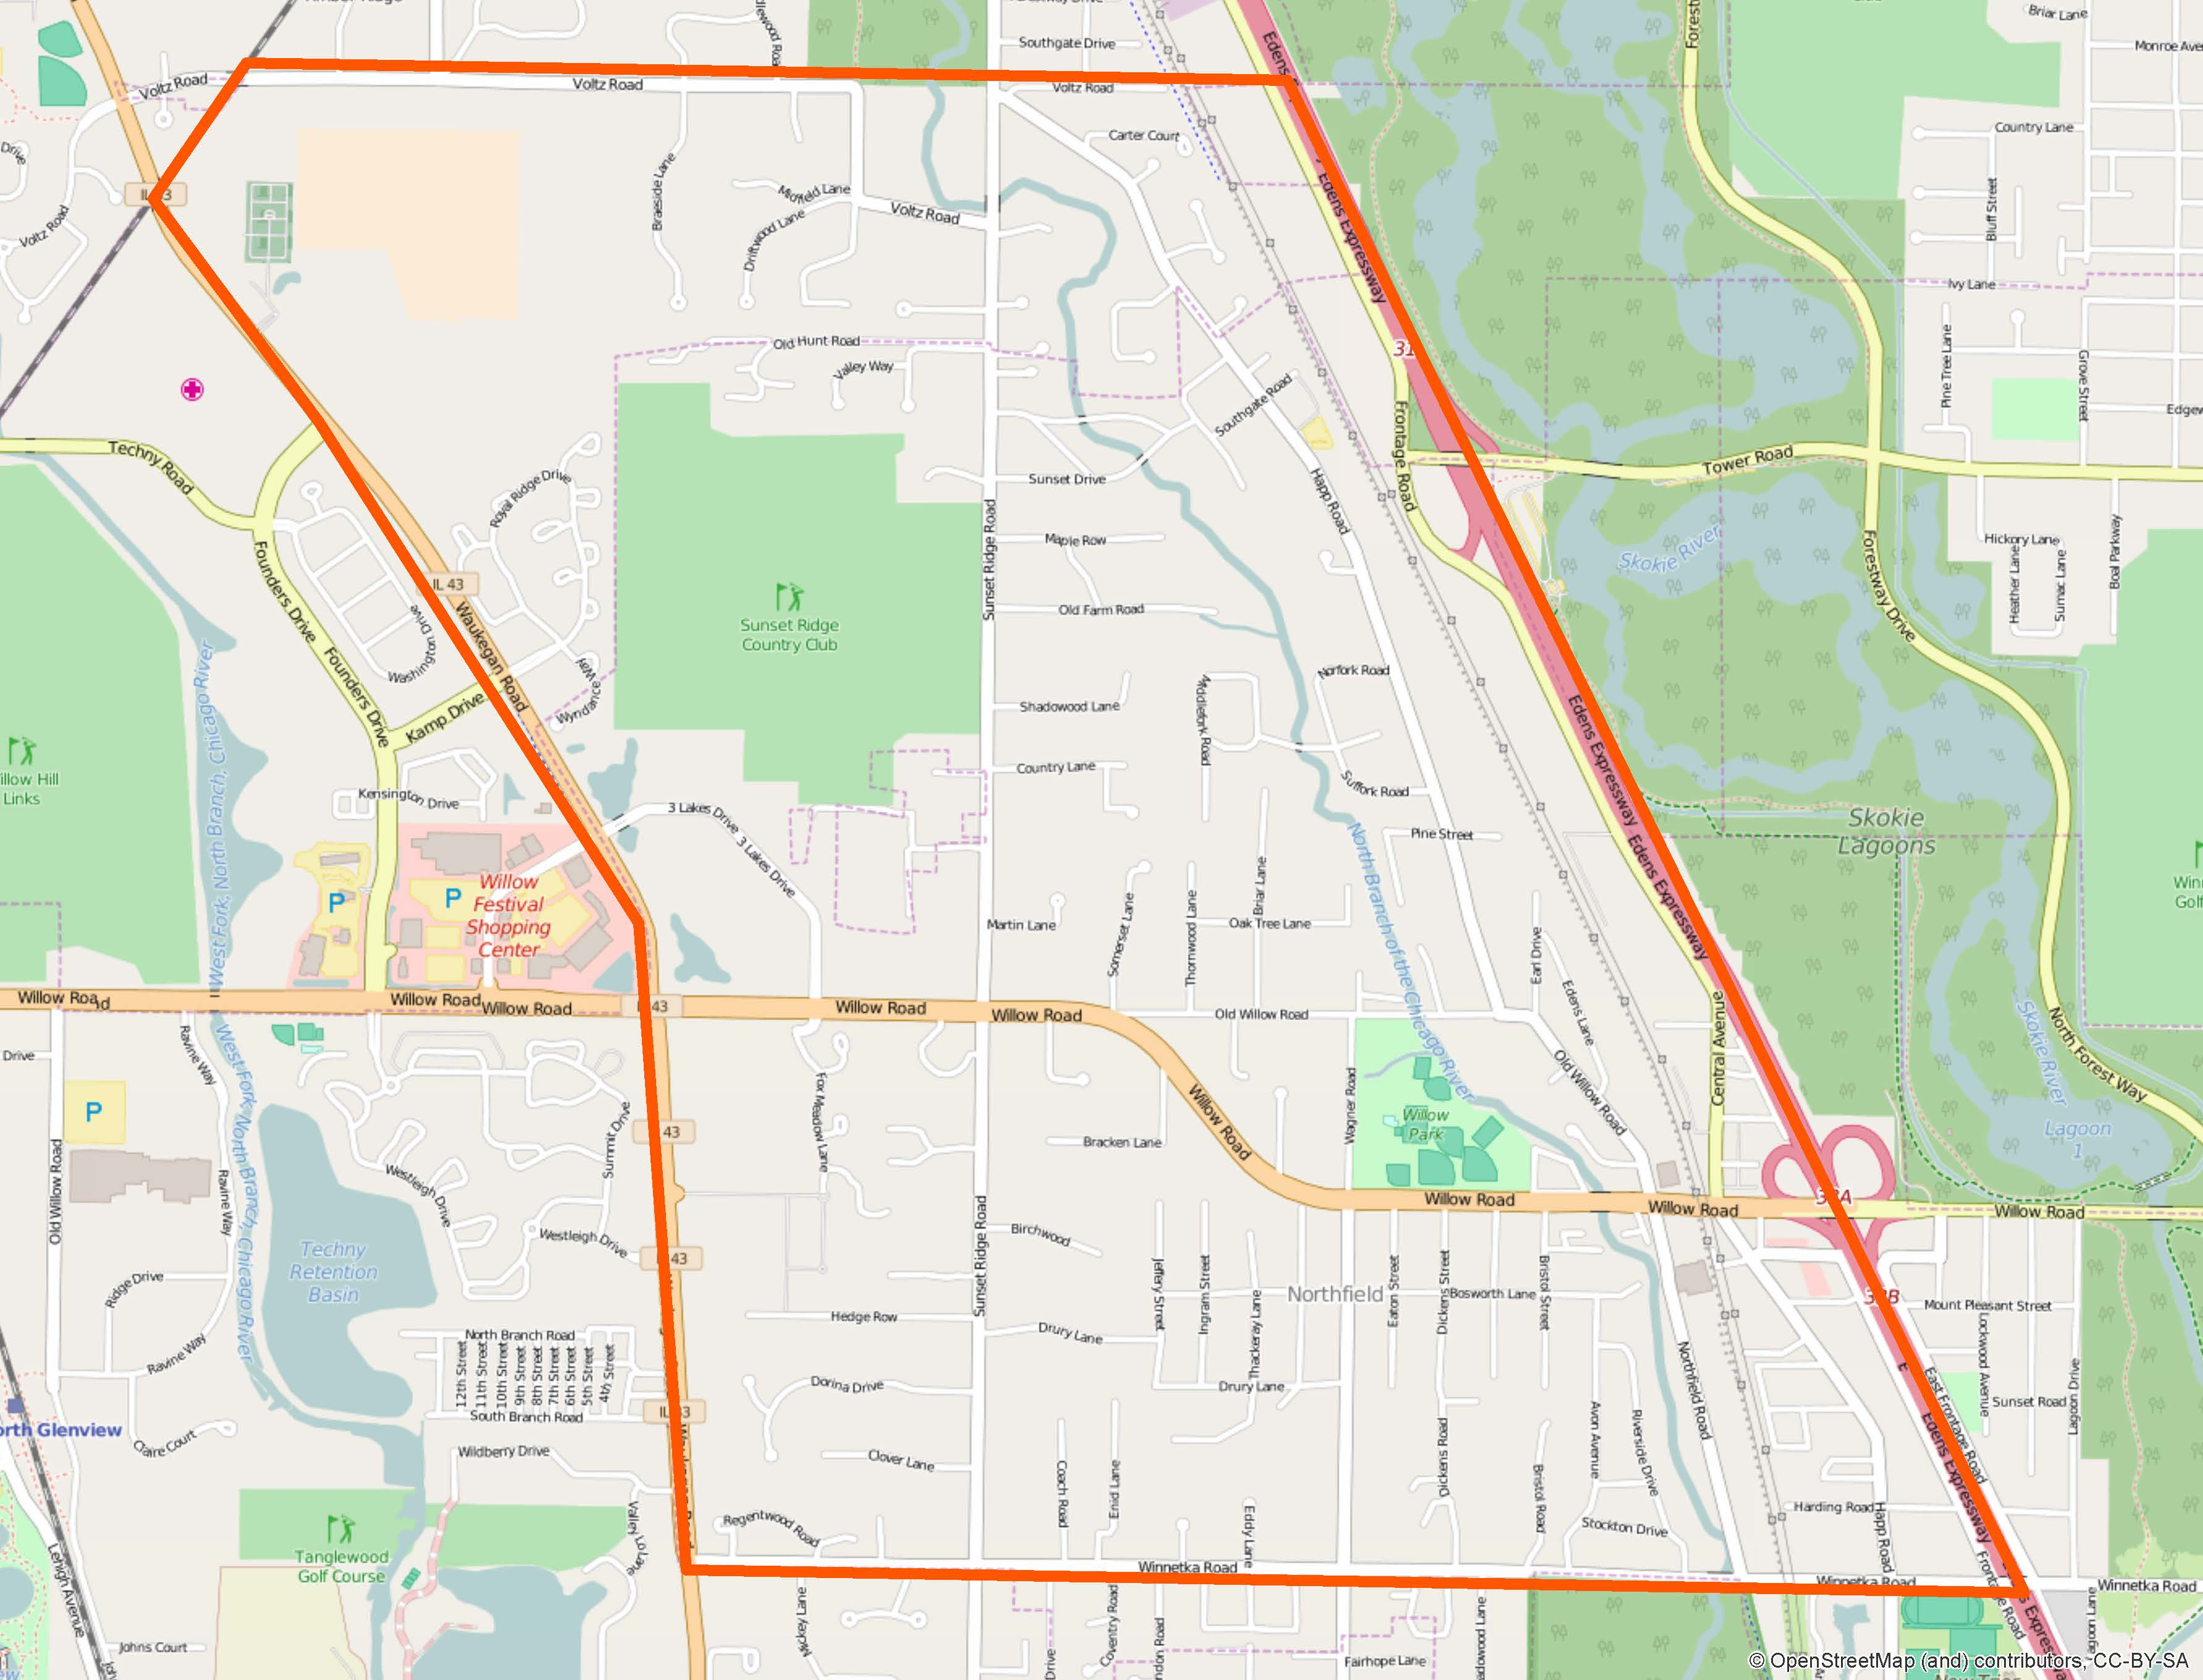 Northfield Park District Boundary Map